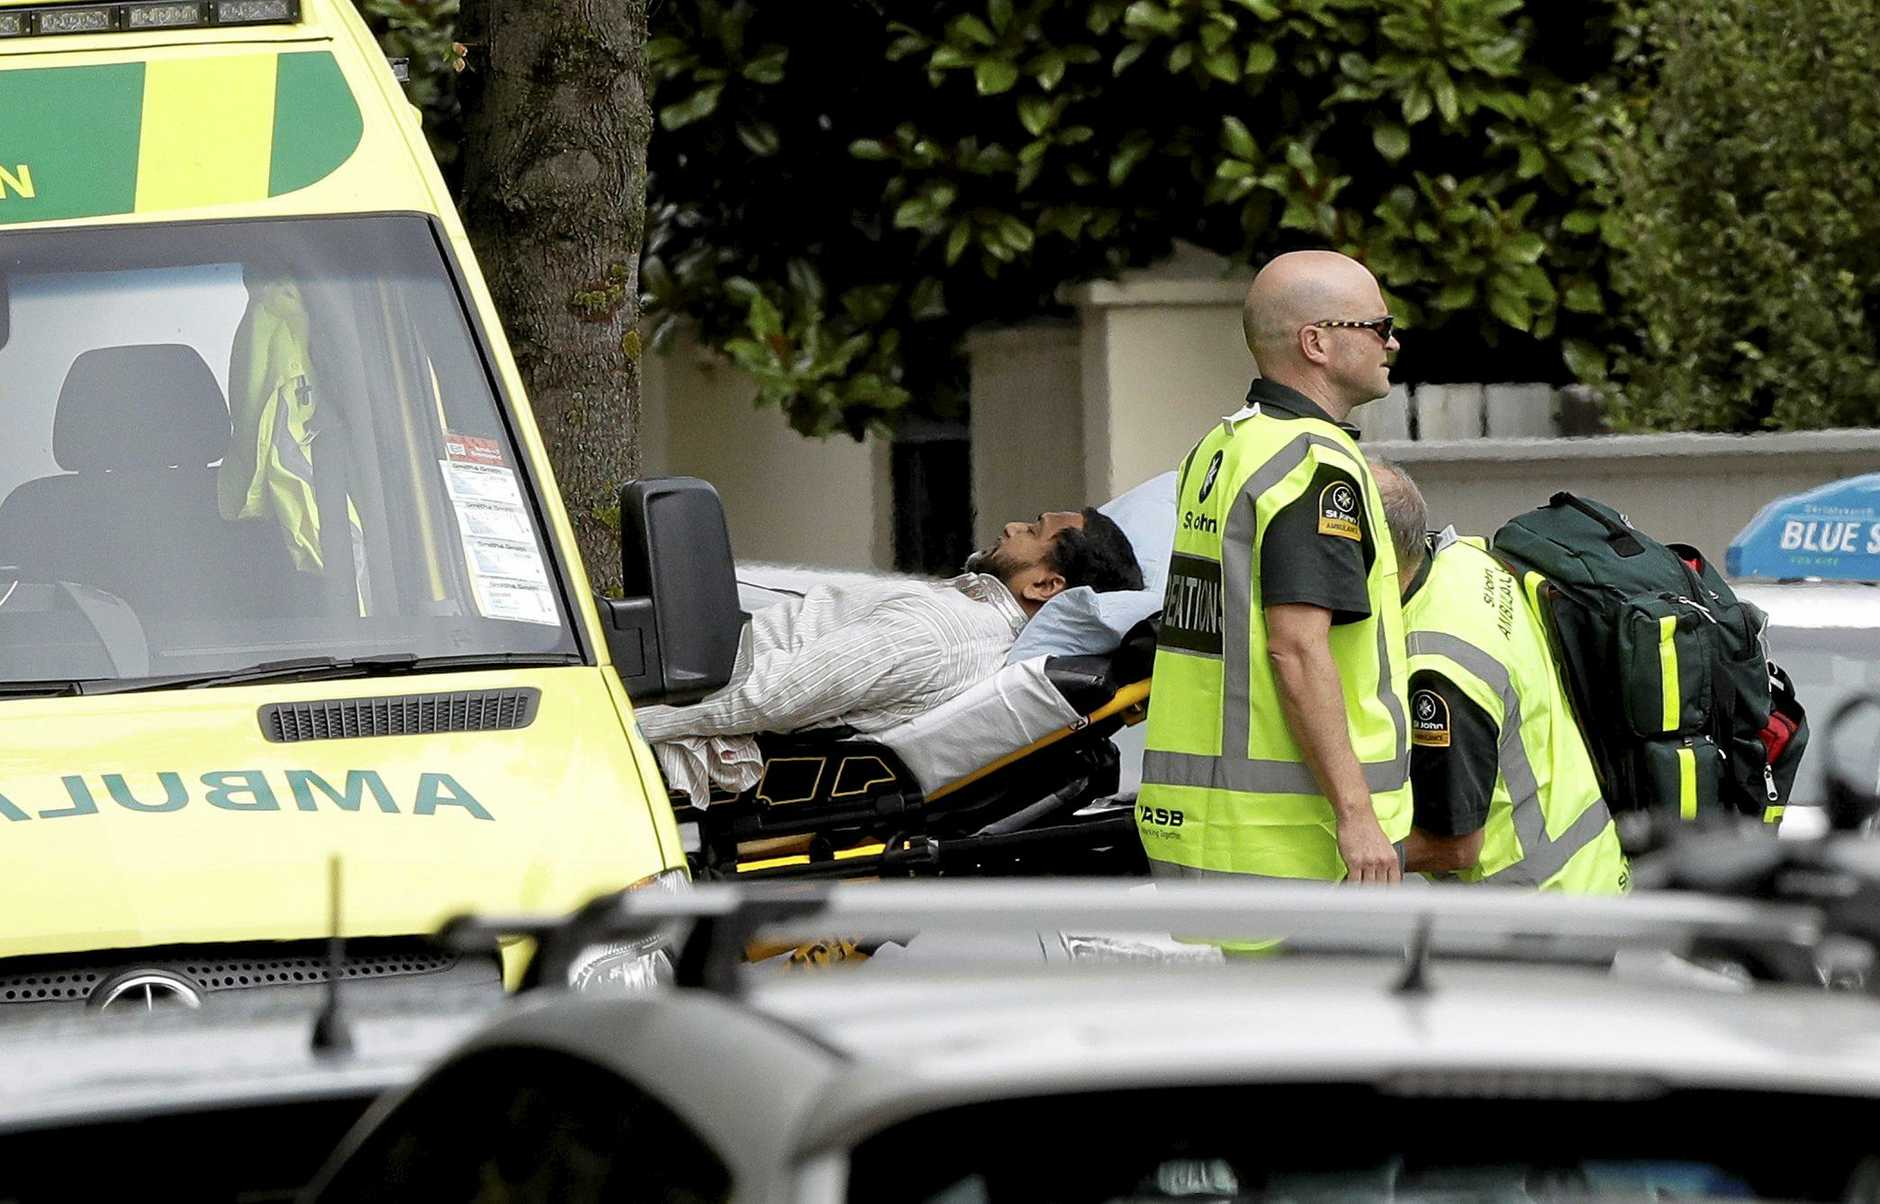 Emergency services respond to the attack at a mosque in Christchurch. The Australian man accused of the attack now faces 50 murder charges.